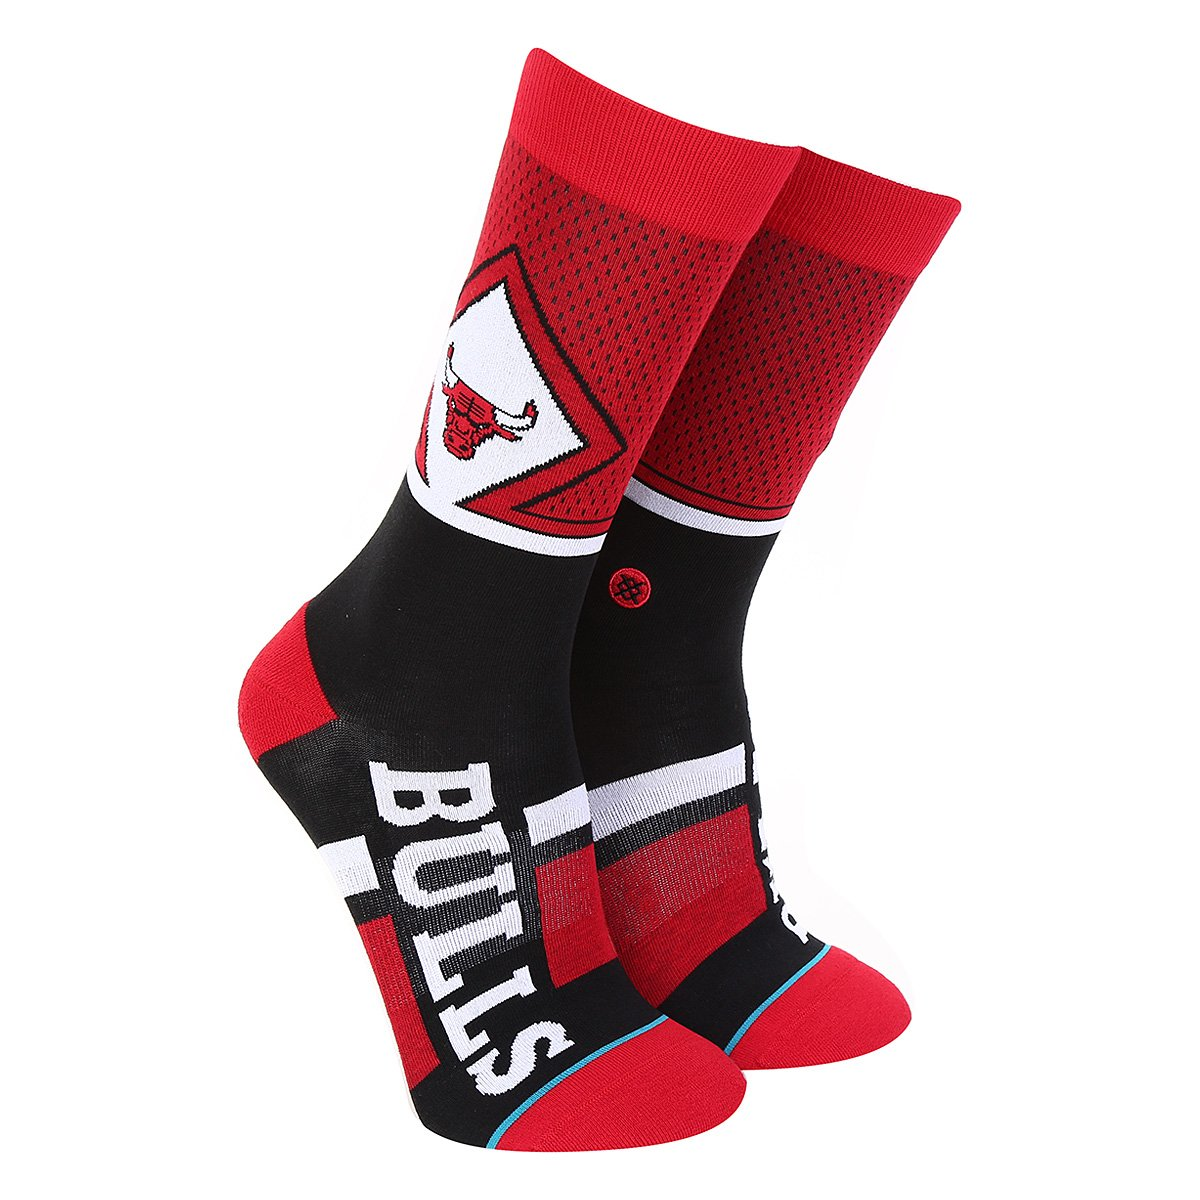 Foto 1 - Meia Stance NBA Chicago Bulls Arena Collection Shortcut Masculina